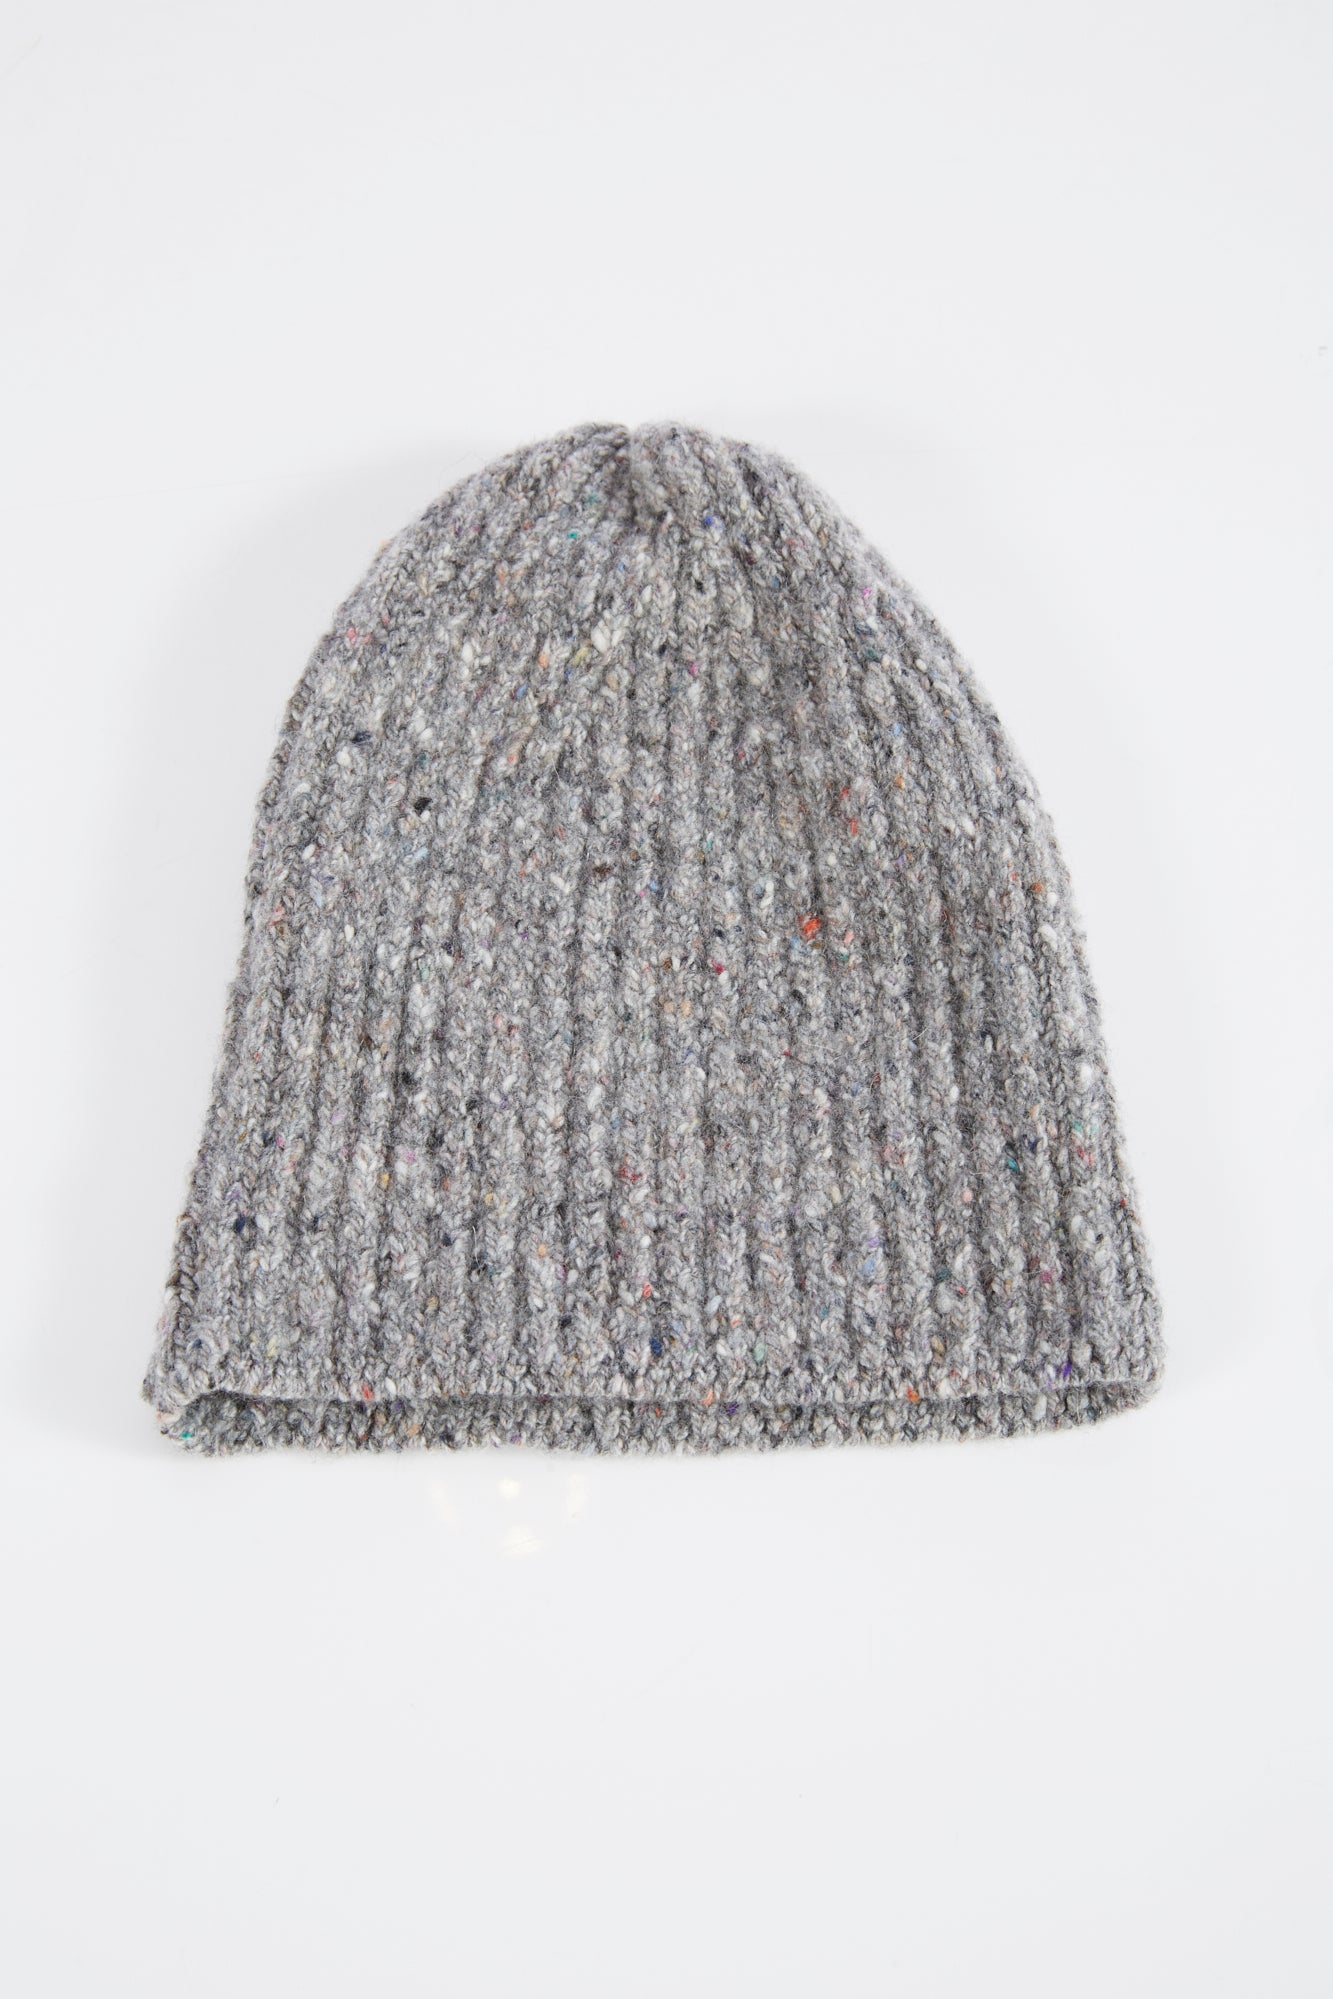 Inis Meain Grey Donegal Wool-Cashmere Beanie